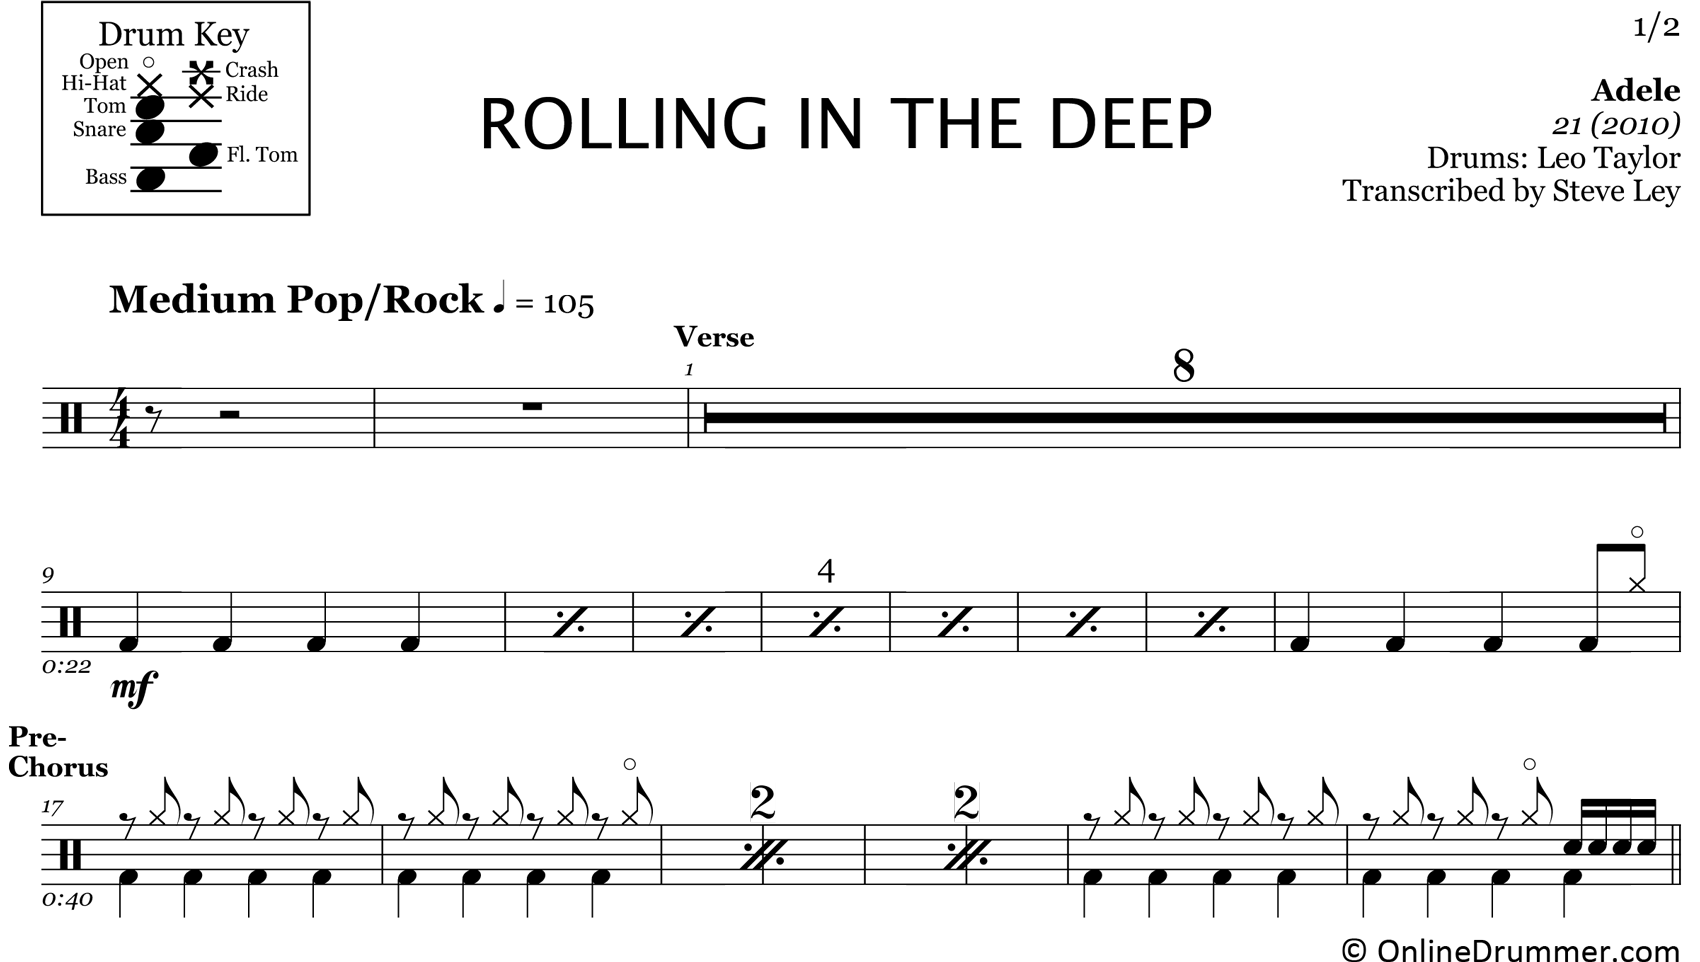 Rolling in the Deep - Adele - Drum Sheet Music